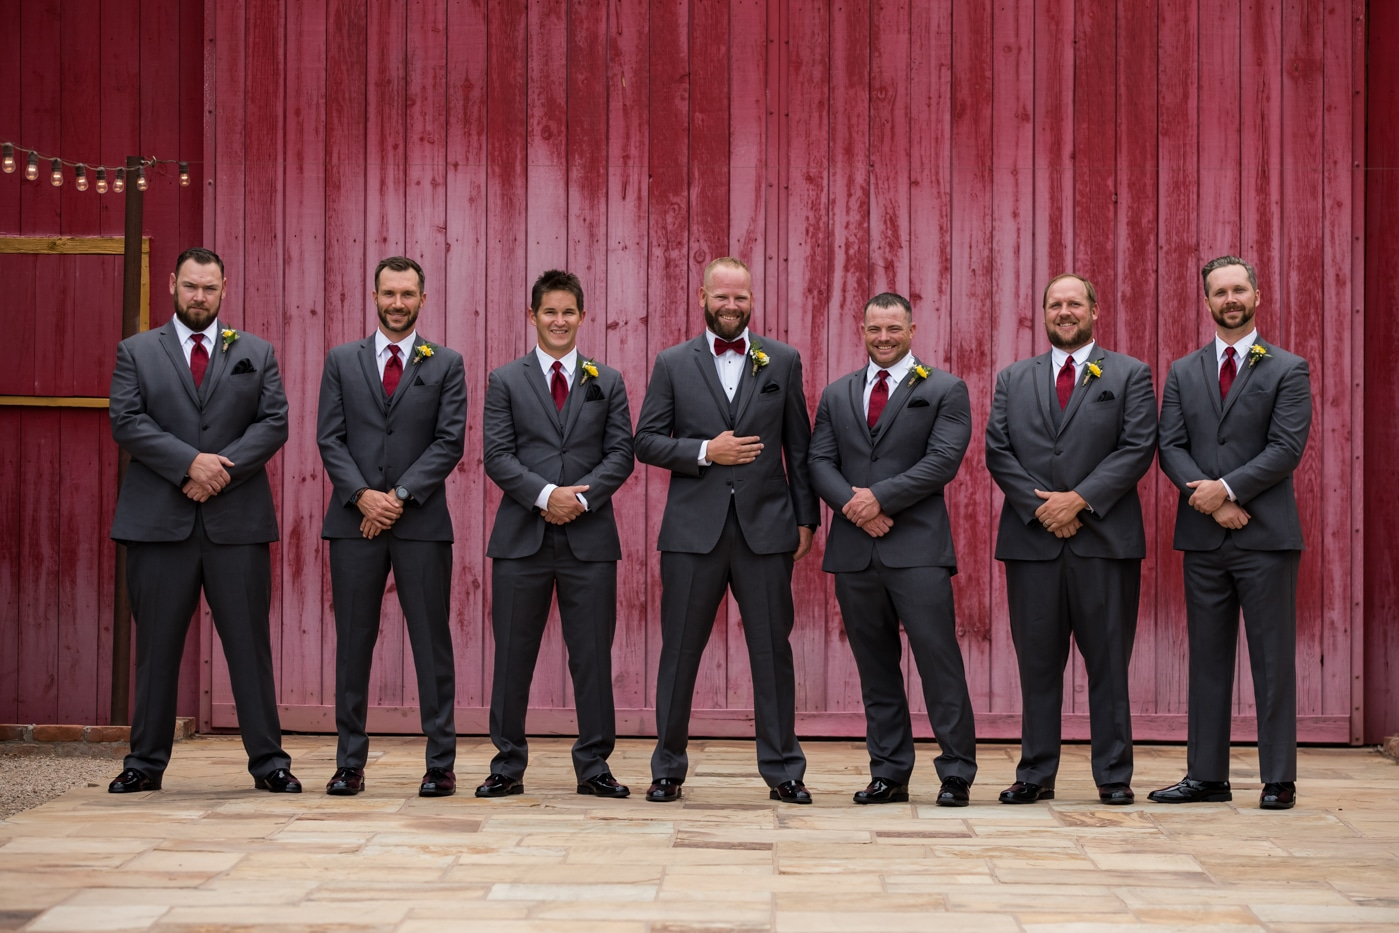 Groomsmen Photos at Windmill Winery 9-1-19